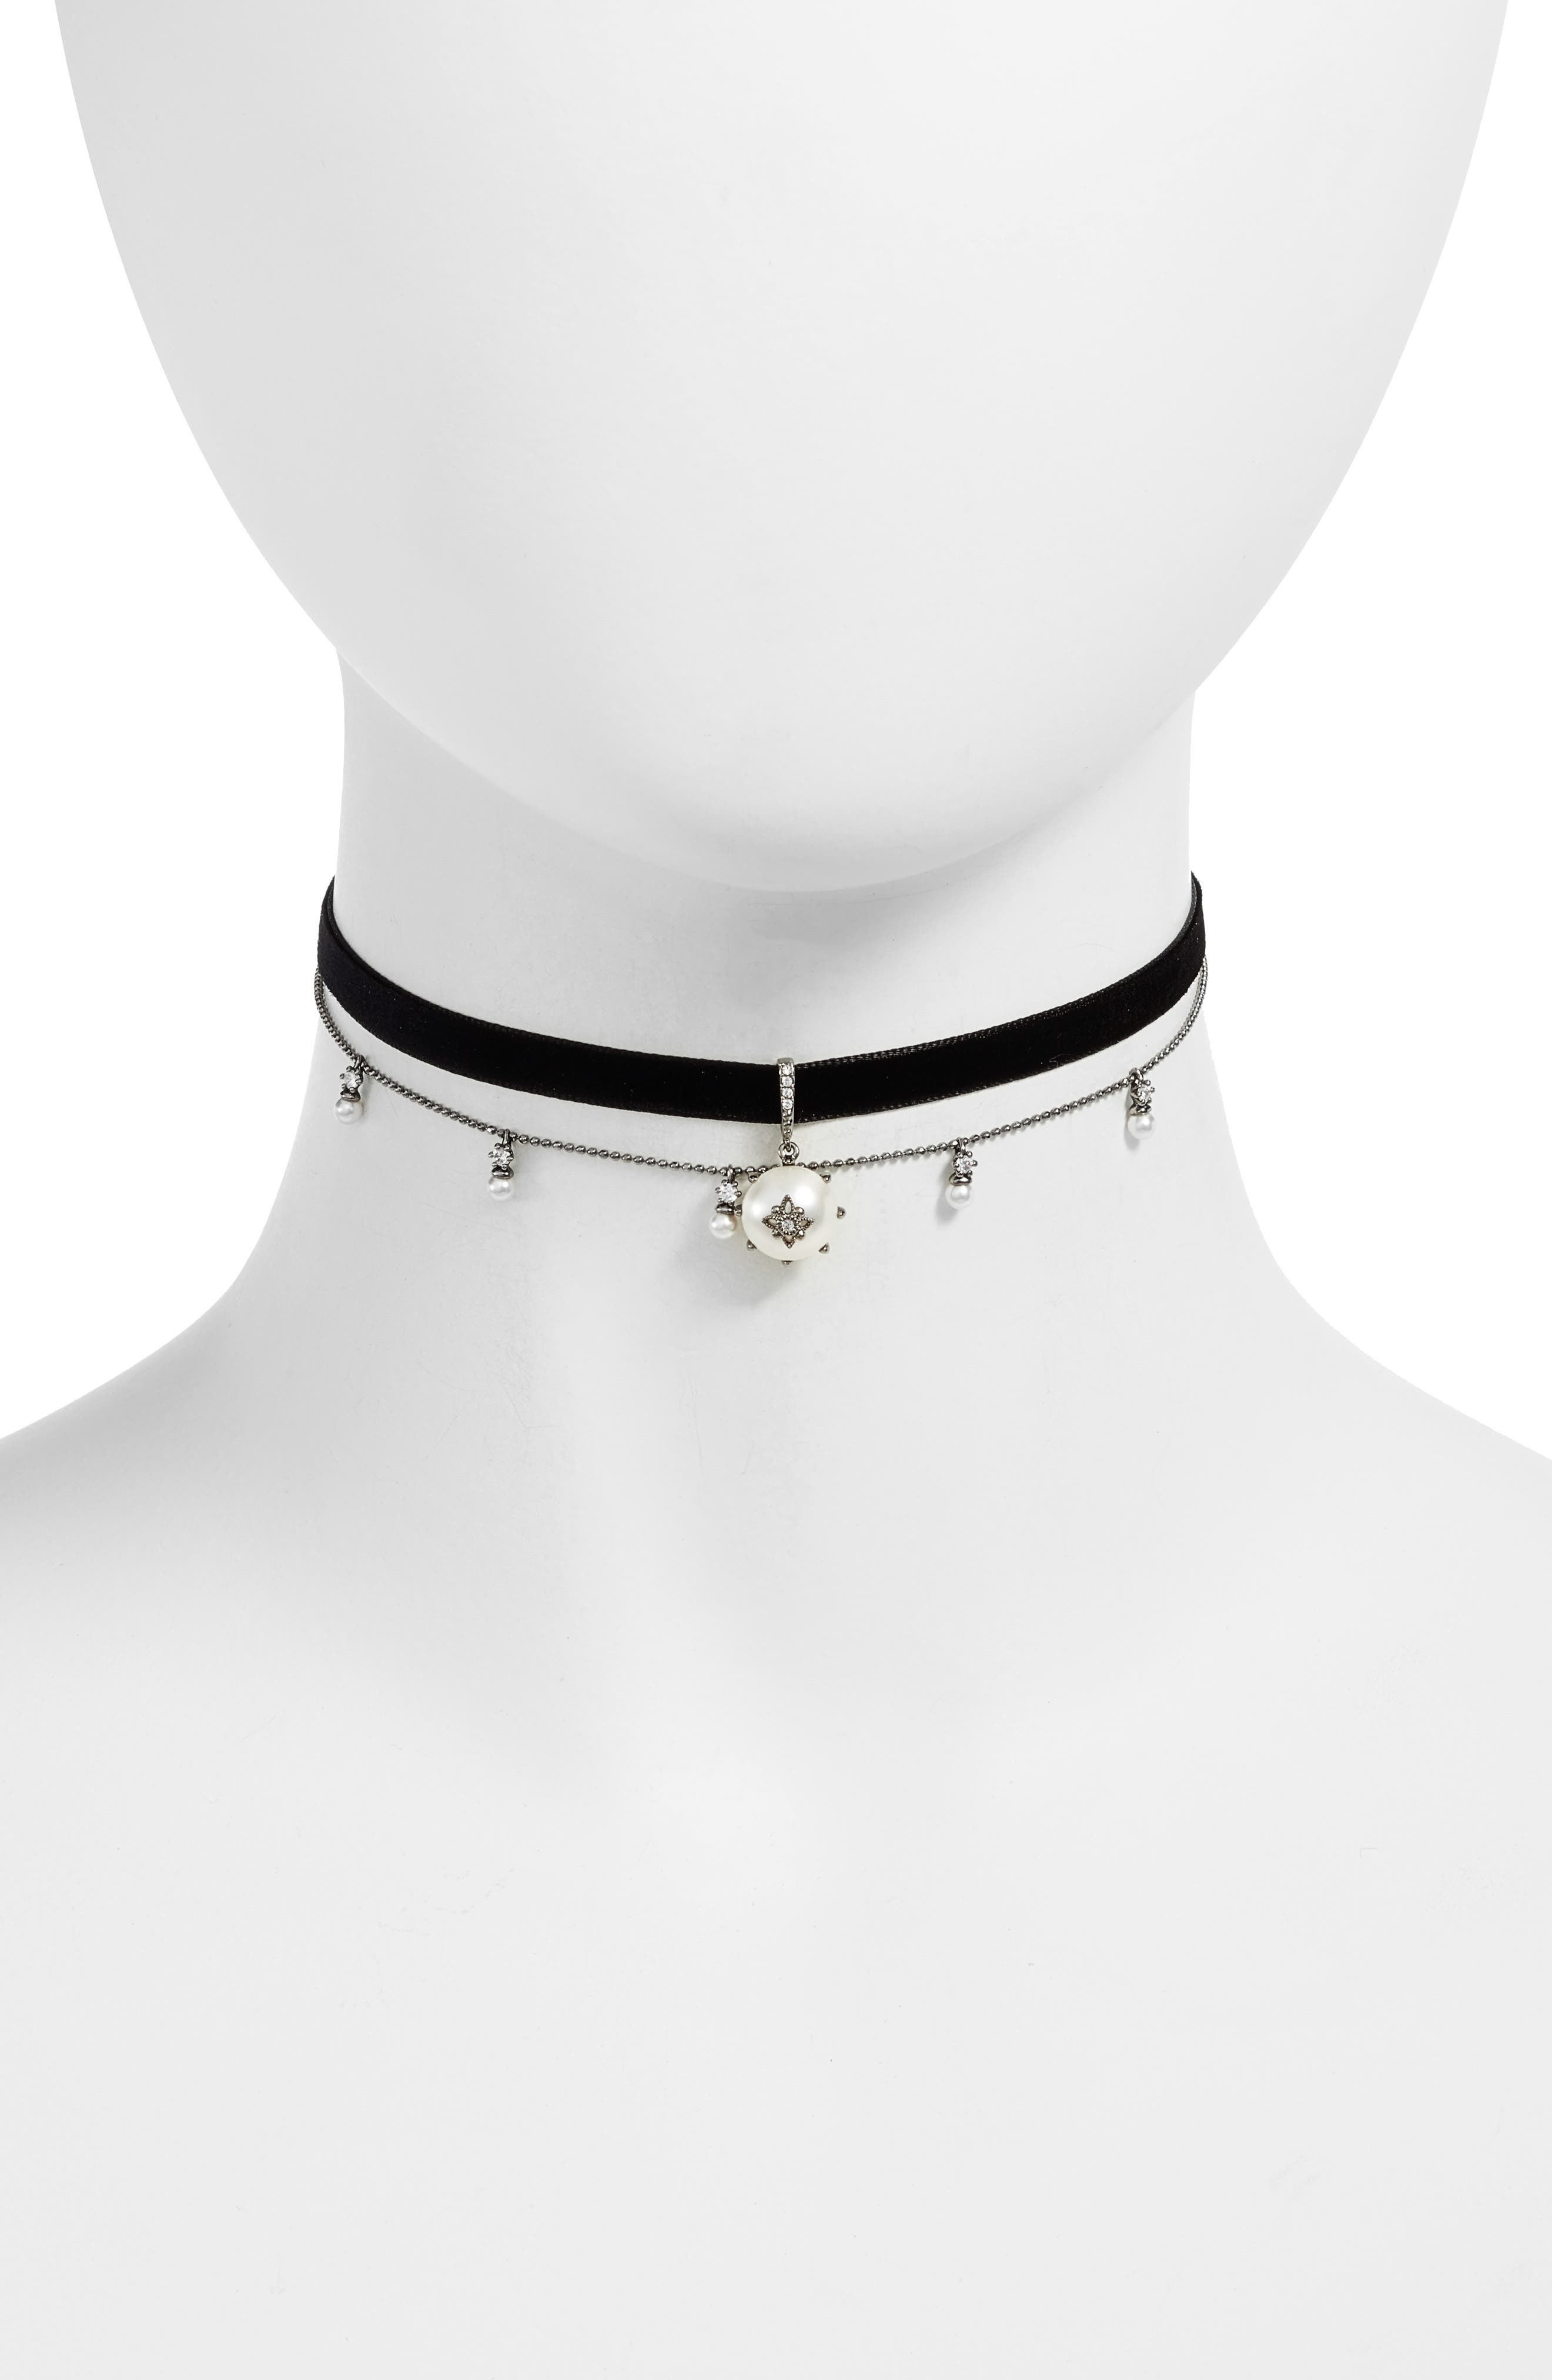 Coquette Faux Pearl Layered Choker Necklace,                             Main thumbnail 1, color,                             100